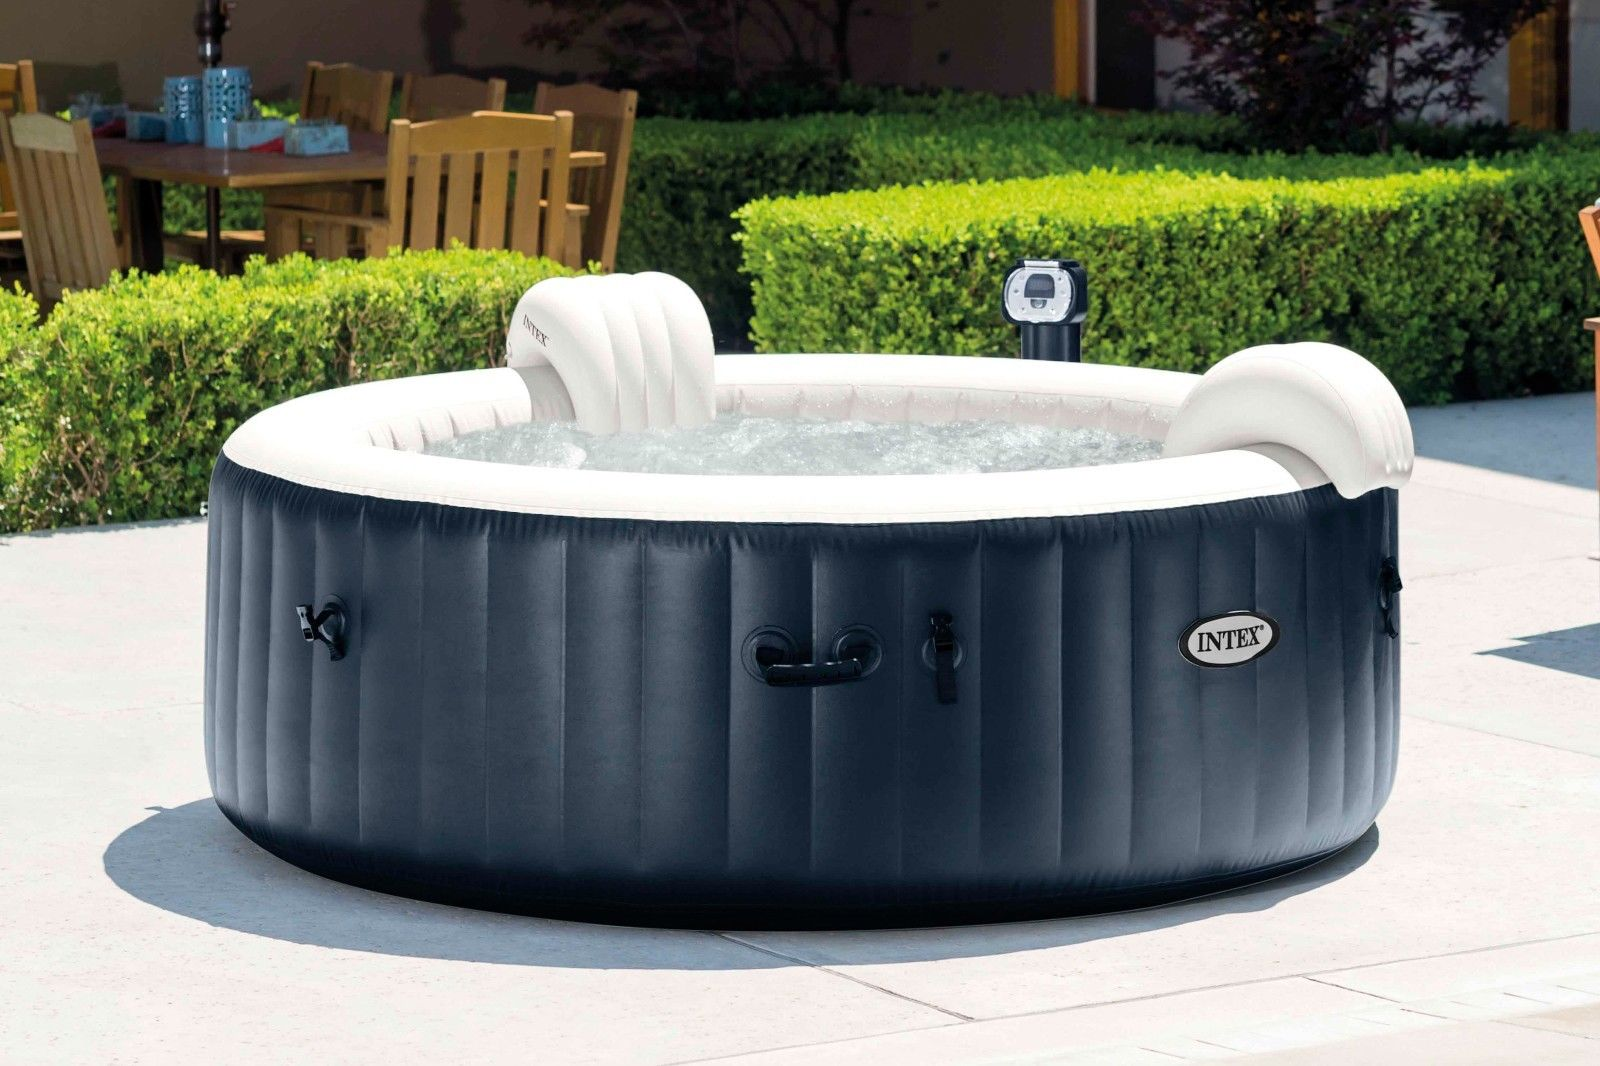 Intex pure spa 4 person inflatable portable heated bubble - Spa o hot tub ...